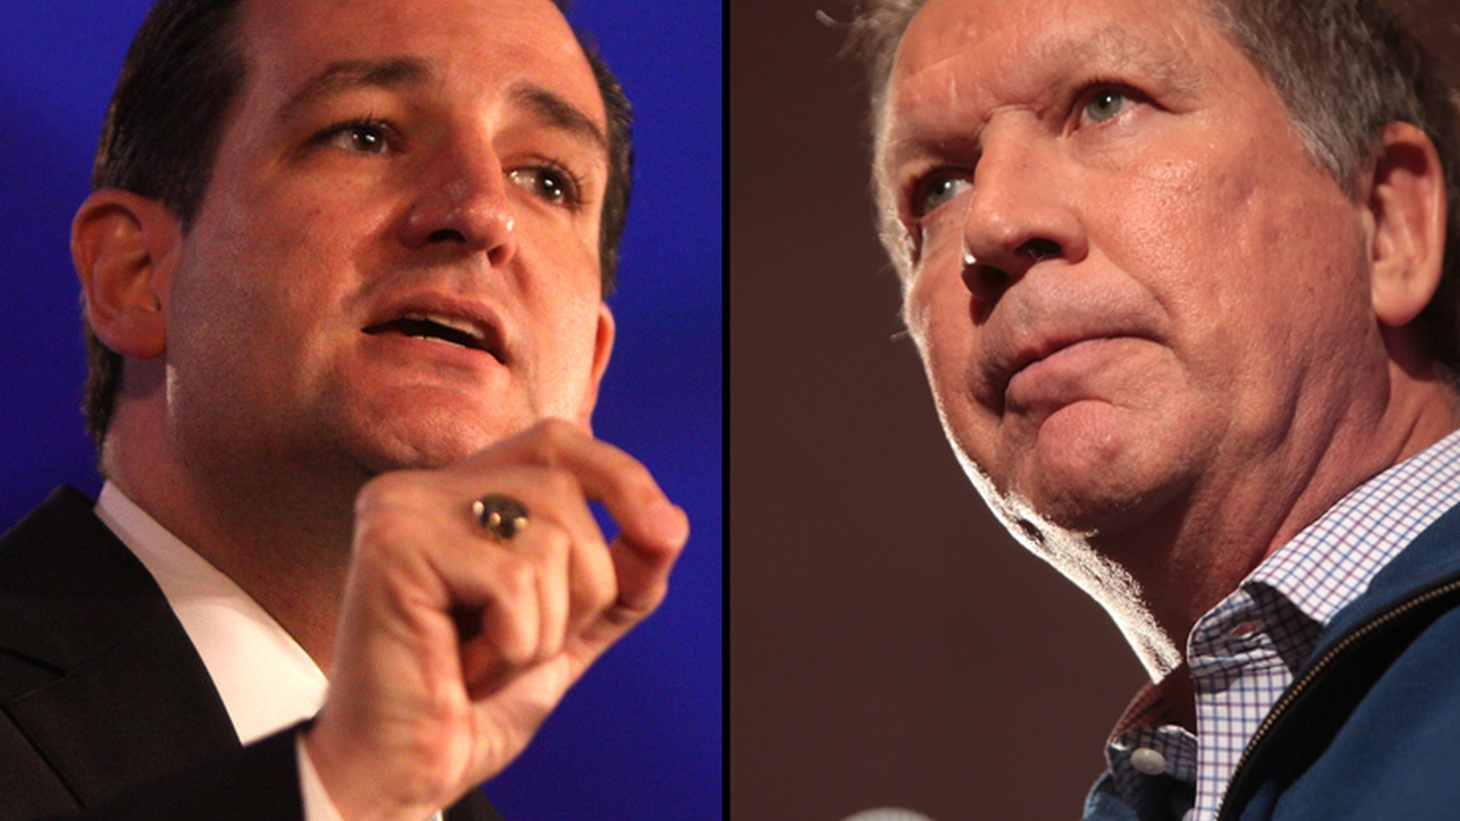 """For Ted Cruz and John Kasich, """"the enemy of my enemy is my friend."""" Donald Trump is looking like a big winner tomorrow in several Northeastern states. So  Ted Cruz  and  John Kasich  are joining forces by agreeing to divide their resources in Indiana, New Mexico and Oregon."""